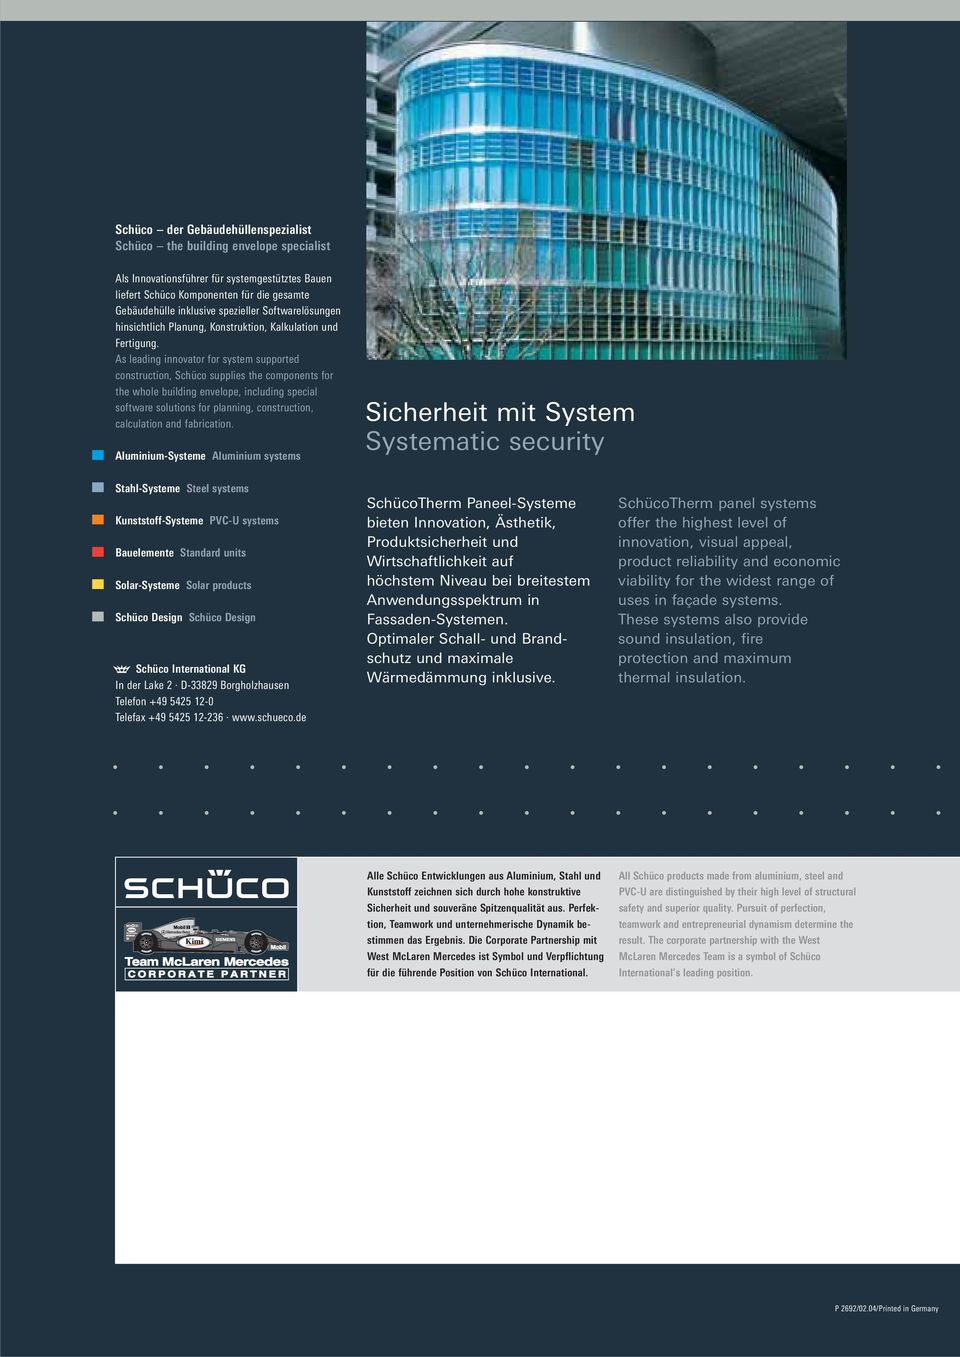 As leading innovator for system supported construction, Schüco supplies the components for the whole building envelope, including special software solutions for planning, construction, calculation